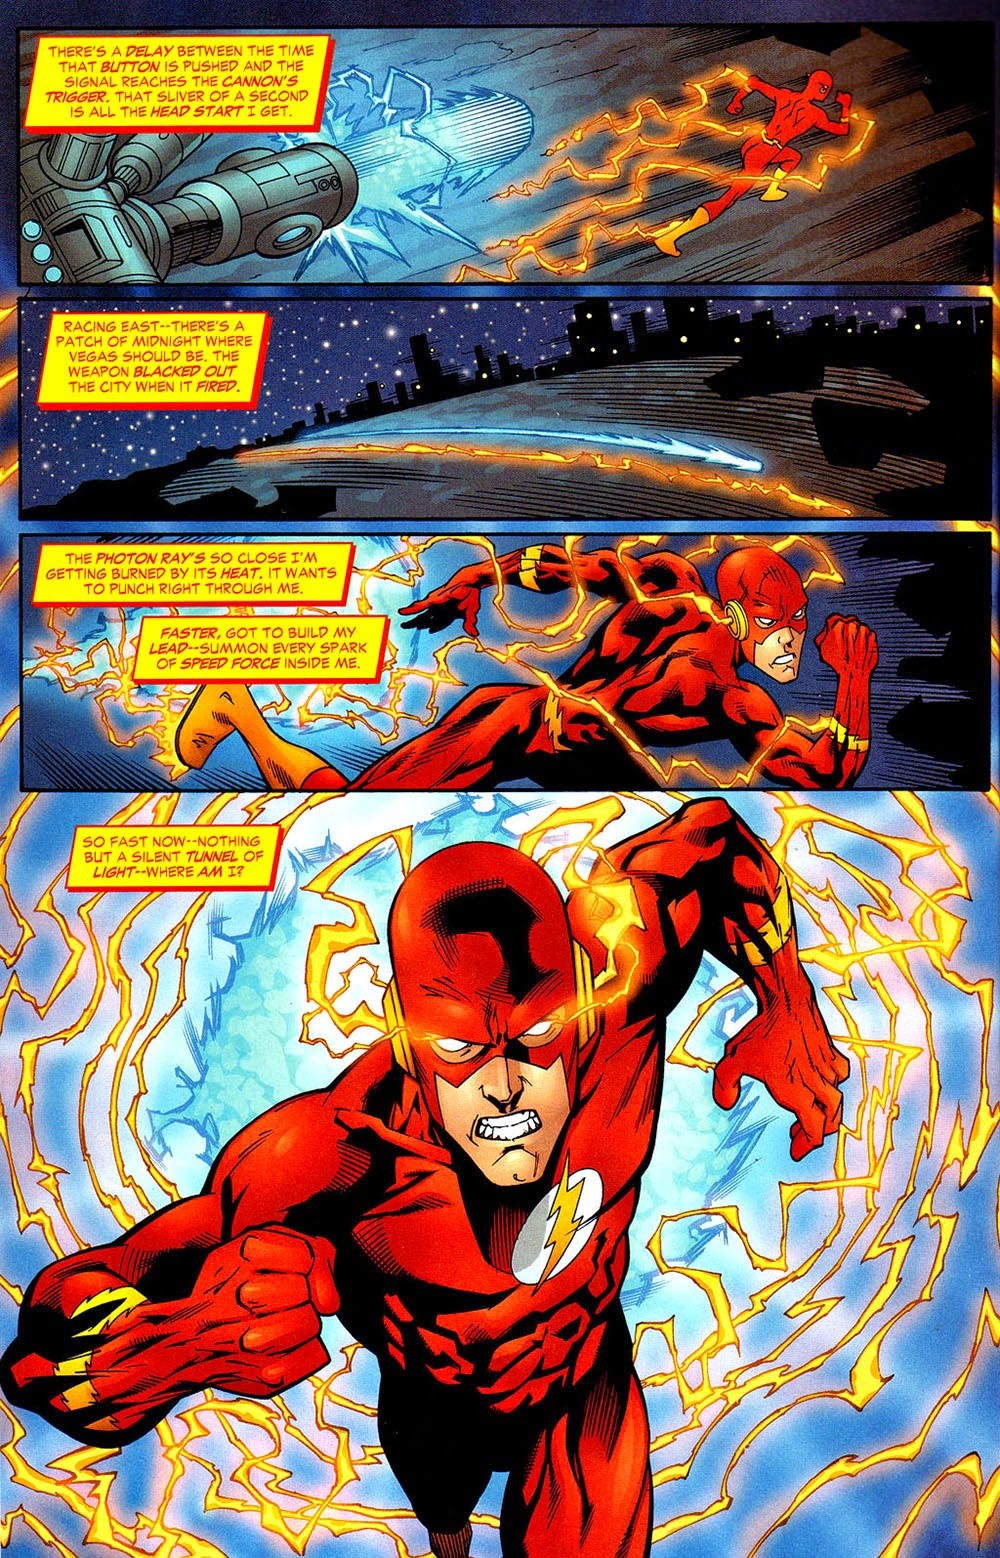 Why is the Flash much slower in his TV series than in the